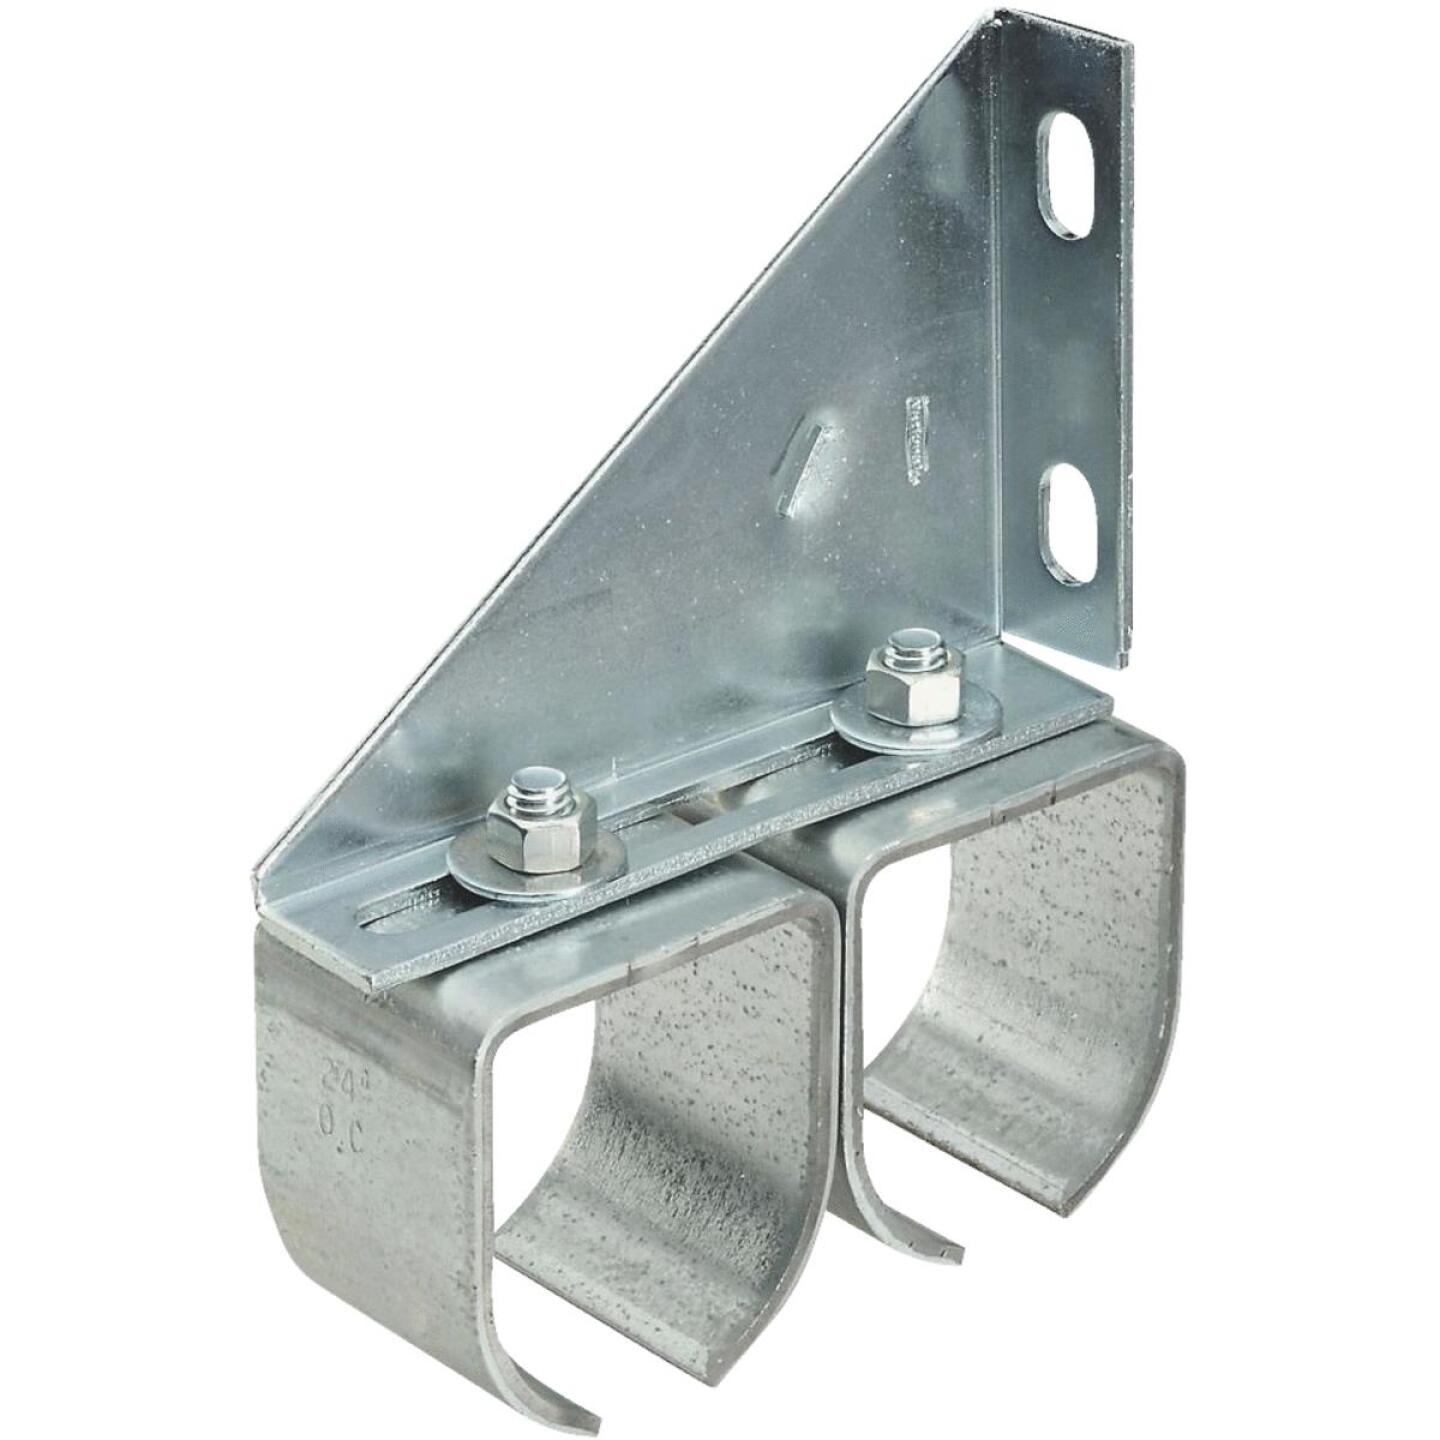 National Galvanized Double Round Rail Barn Door Bracket Image 1